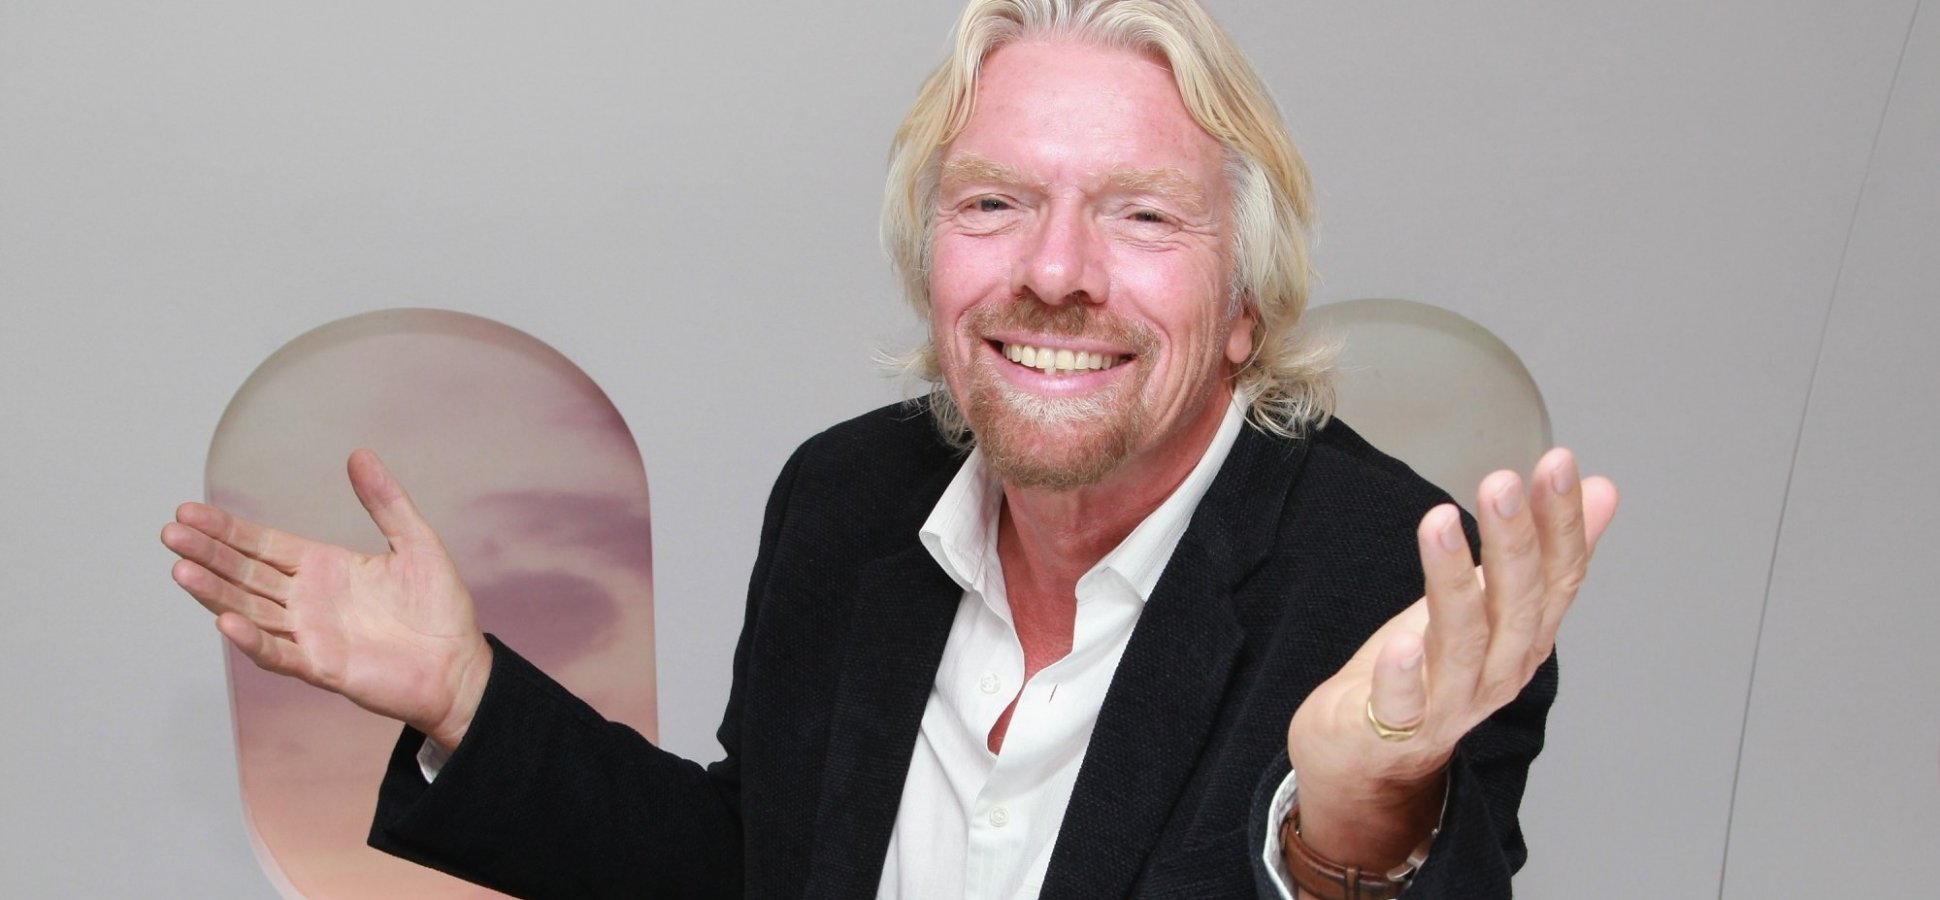 Richard Branson: Work Smarter, Not Longer